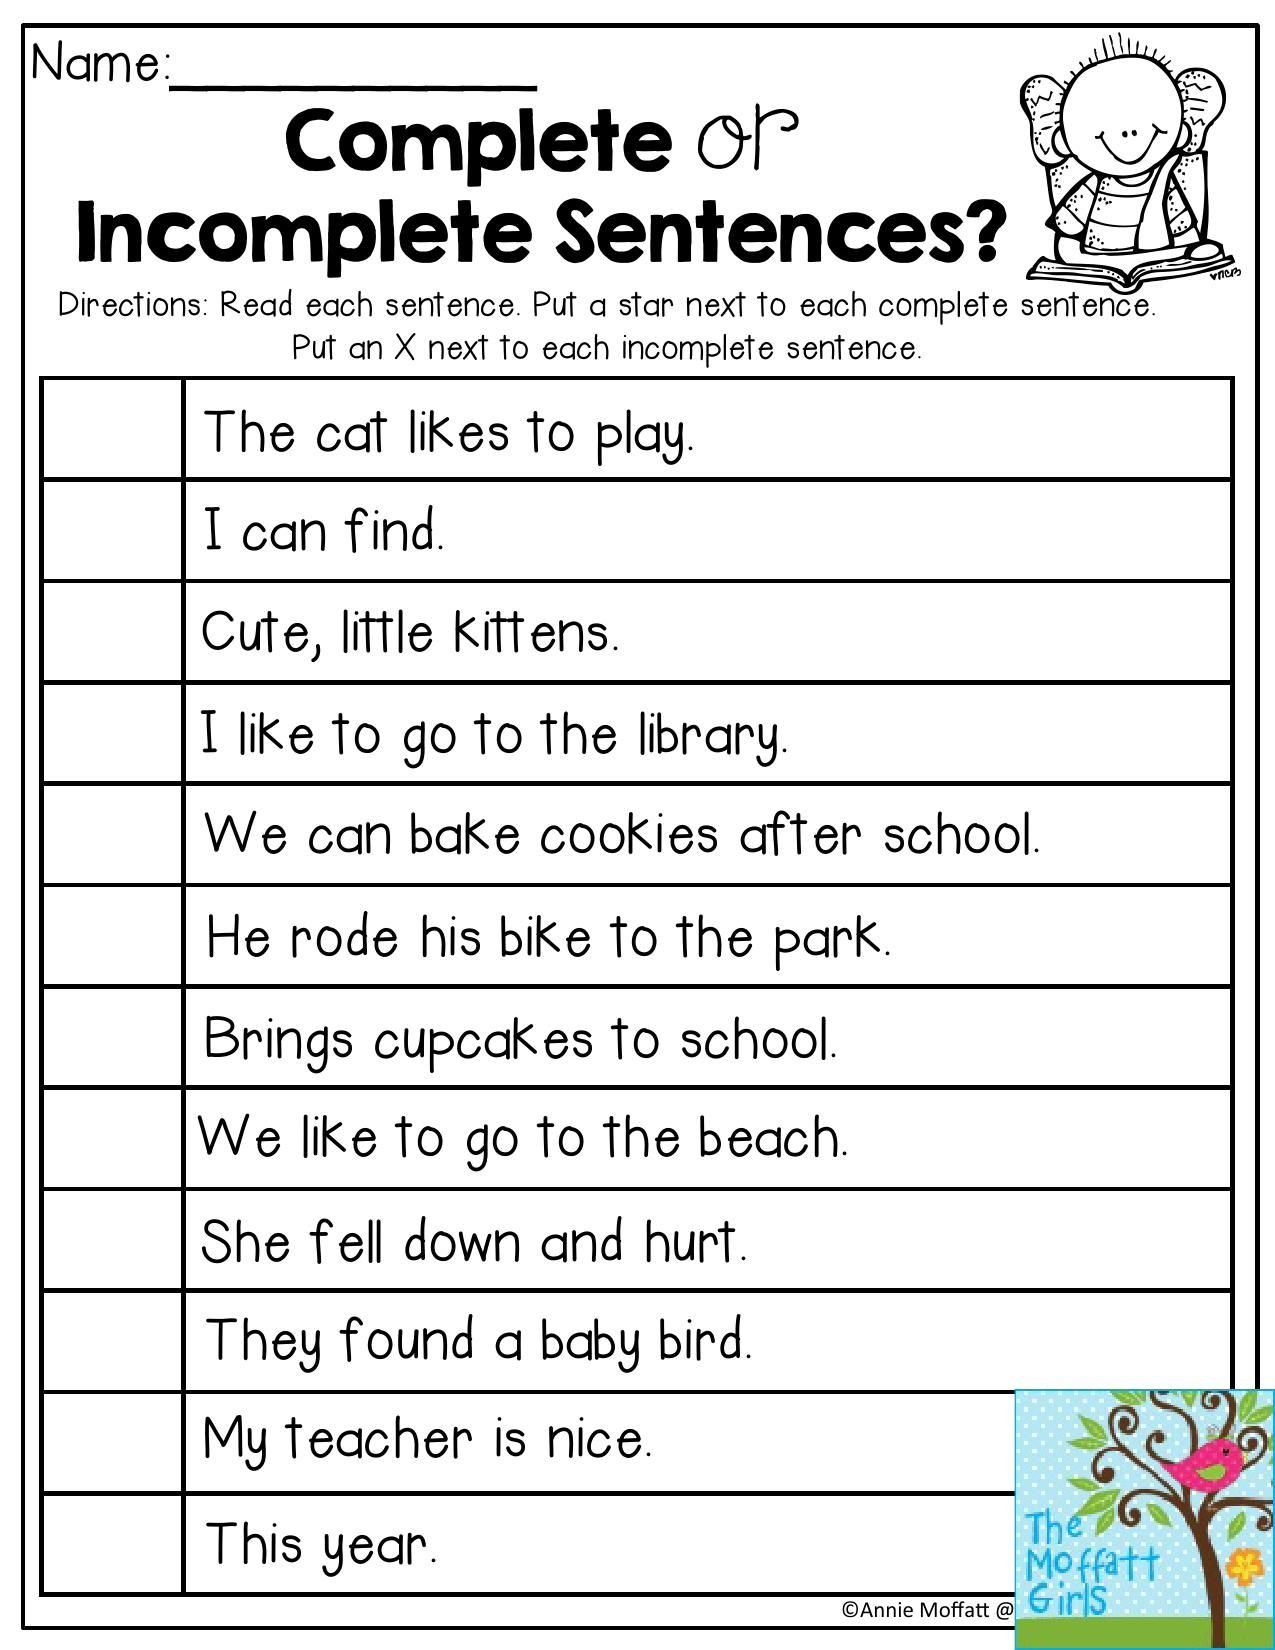 Complete Sentence Worksheets 3rd Grade Back To School Packets In 2020 First Grade Writing Writing Complete Sentences Teaching Writing